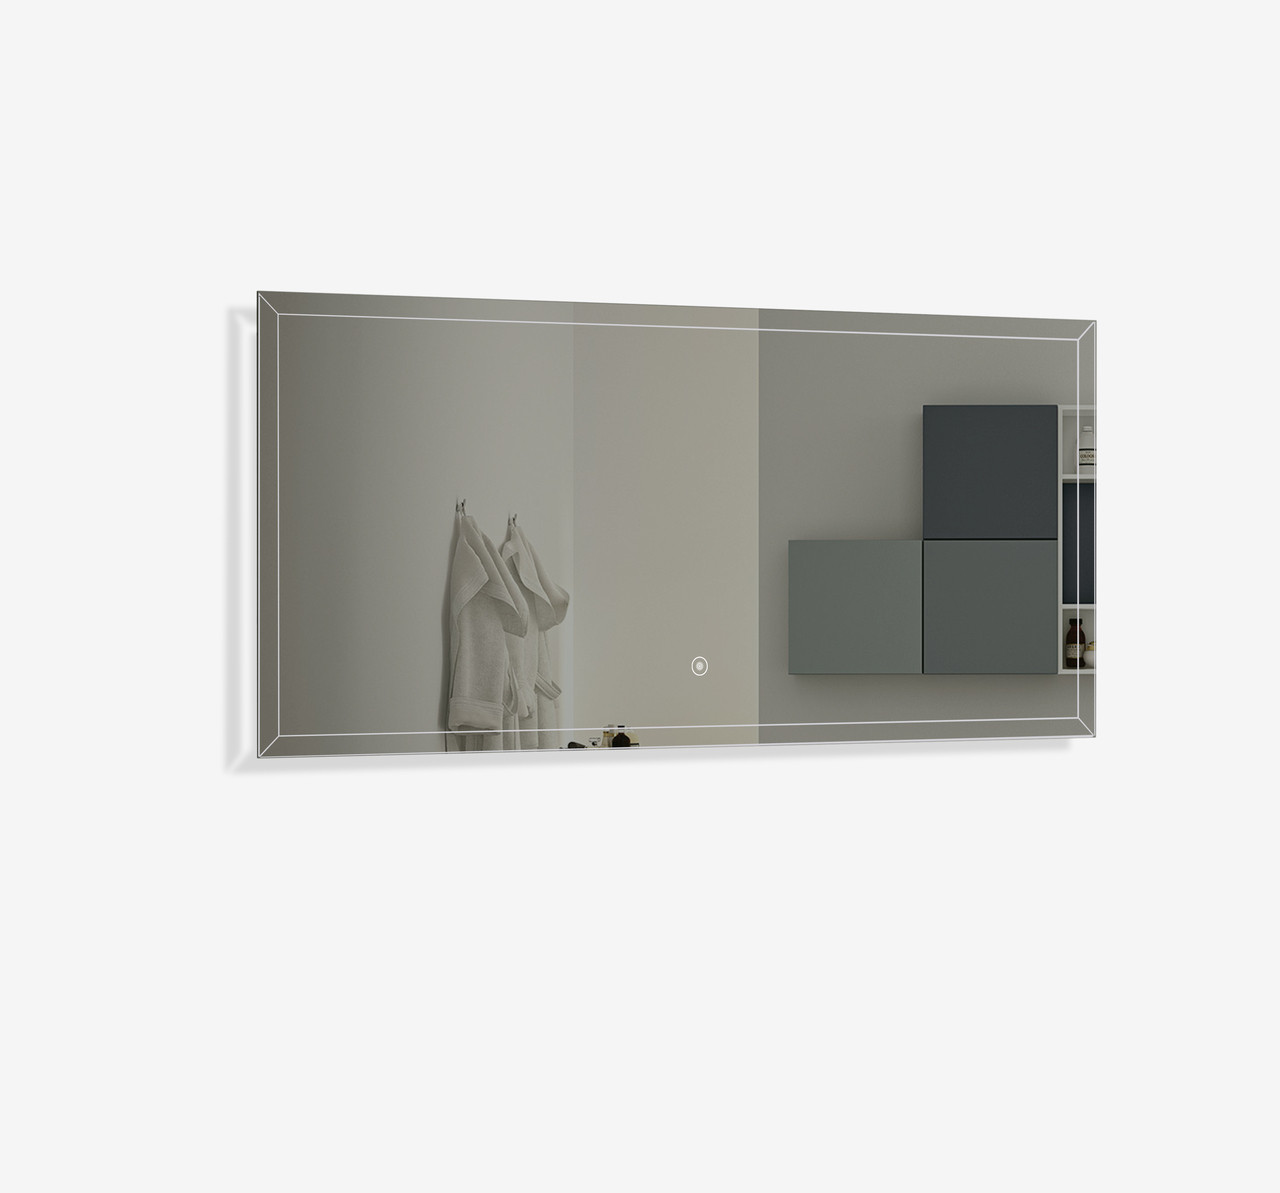 FERO 48 INCH WALL MOUNTED BATHROOM MIRROR WITH LED LIGHT - Bathroom ...